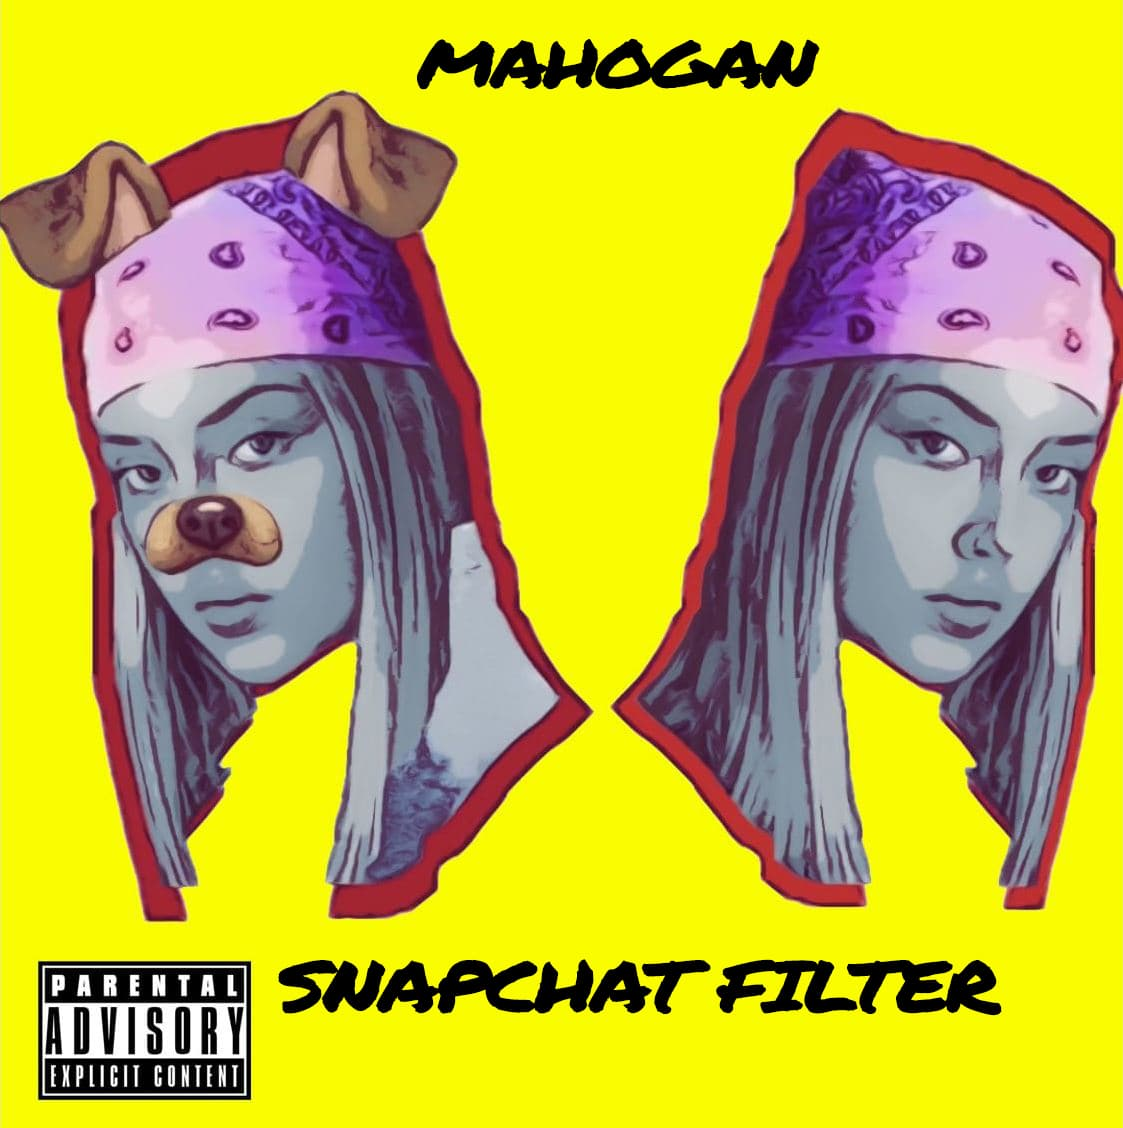 Upcoming: Mahogan - Snapchatfilter